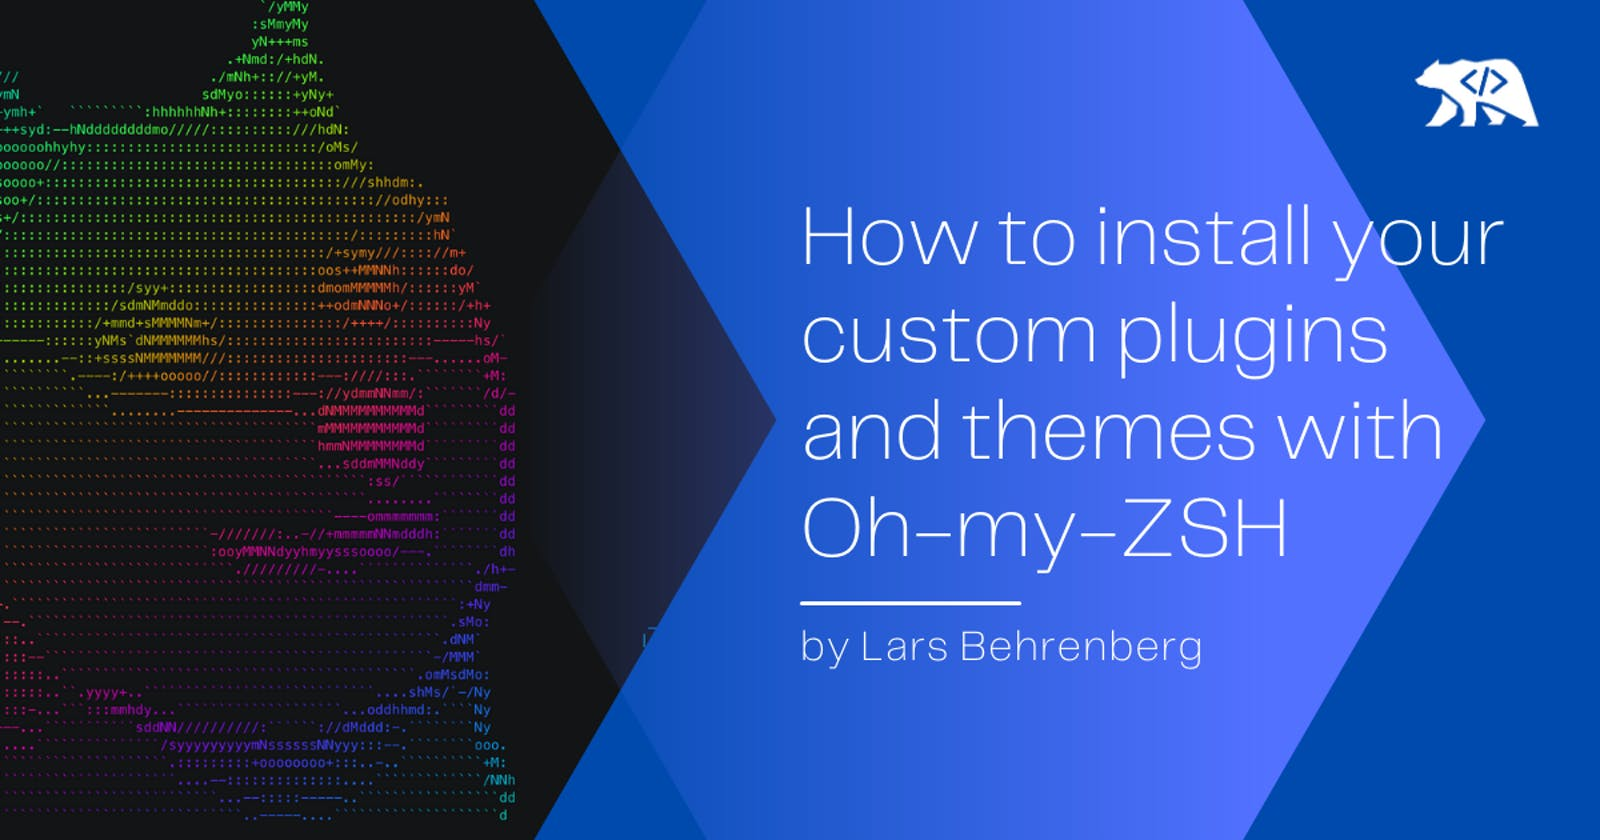 How to install custom plugins and themes with Oh-My-ZSH